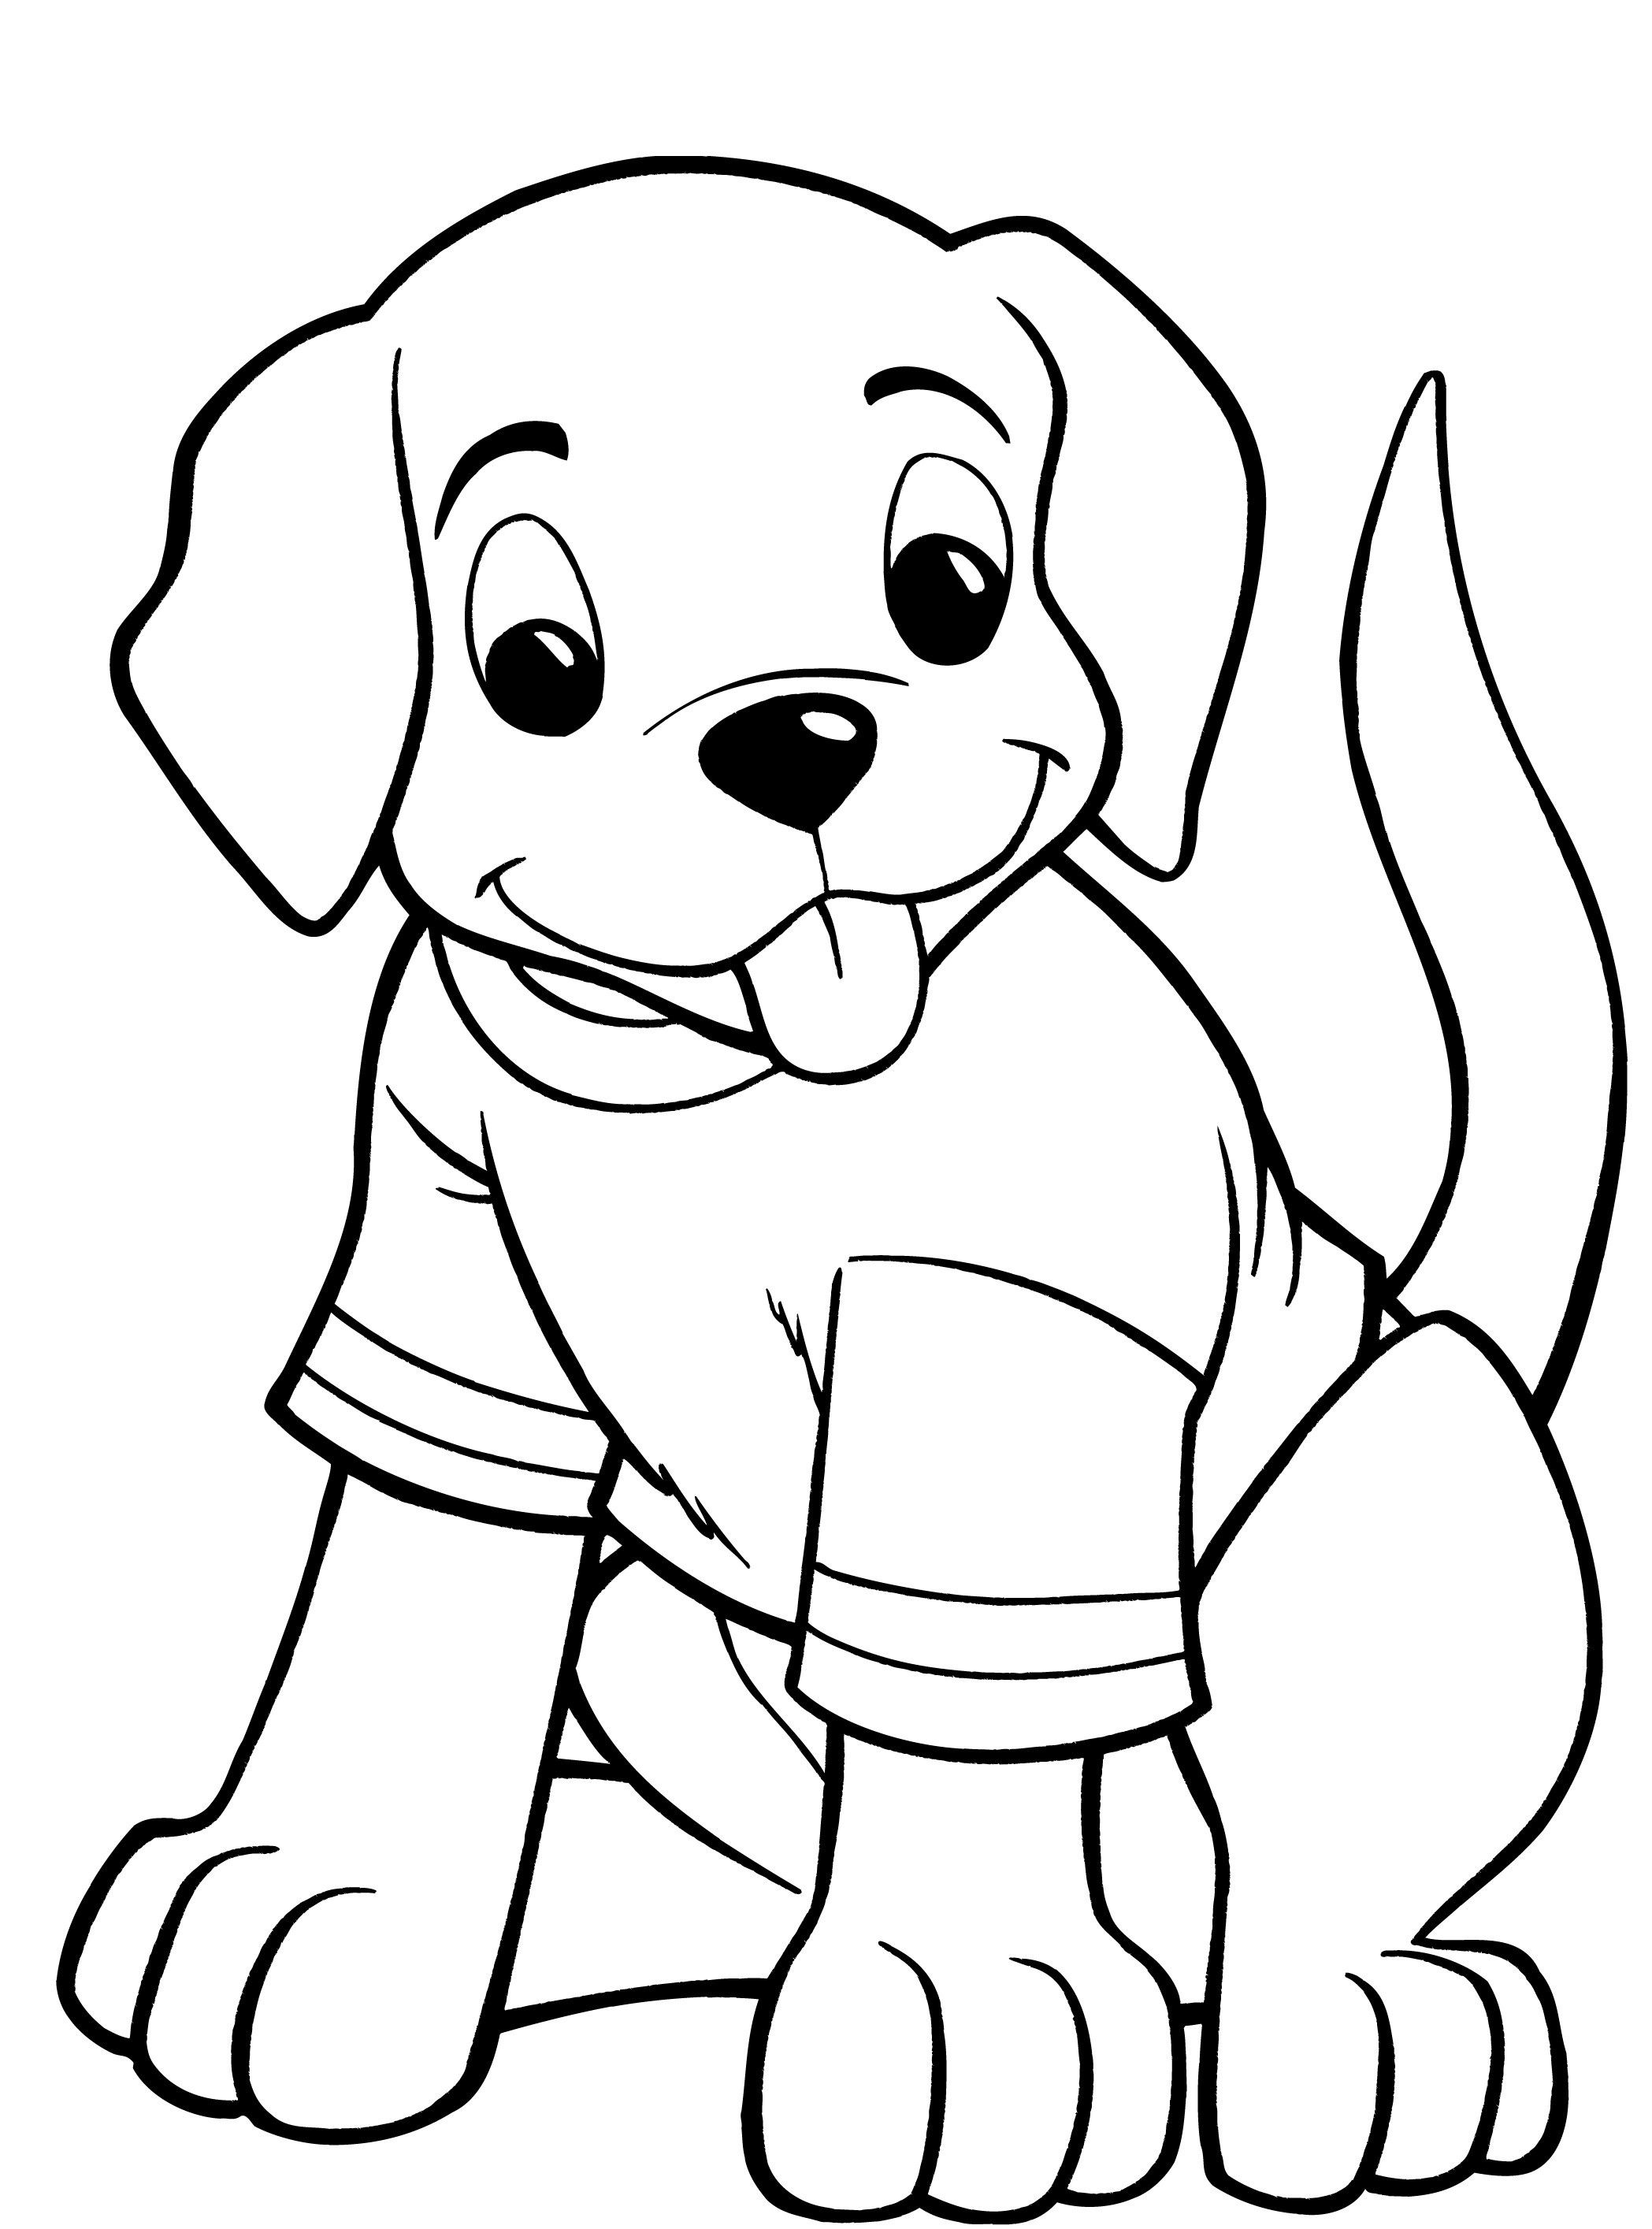 Dog Coloring Pages For Kids - Preschool and Kindergarten | Dog ...